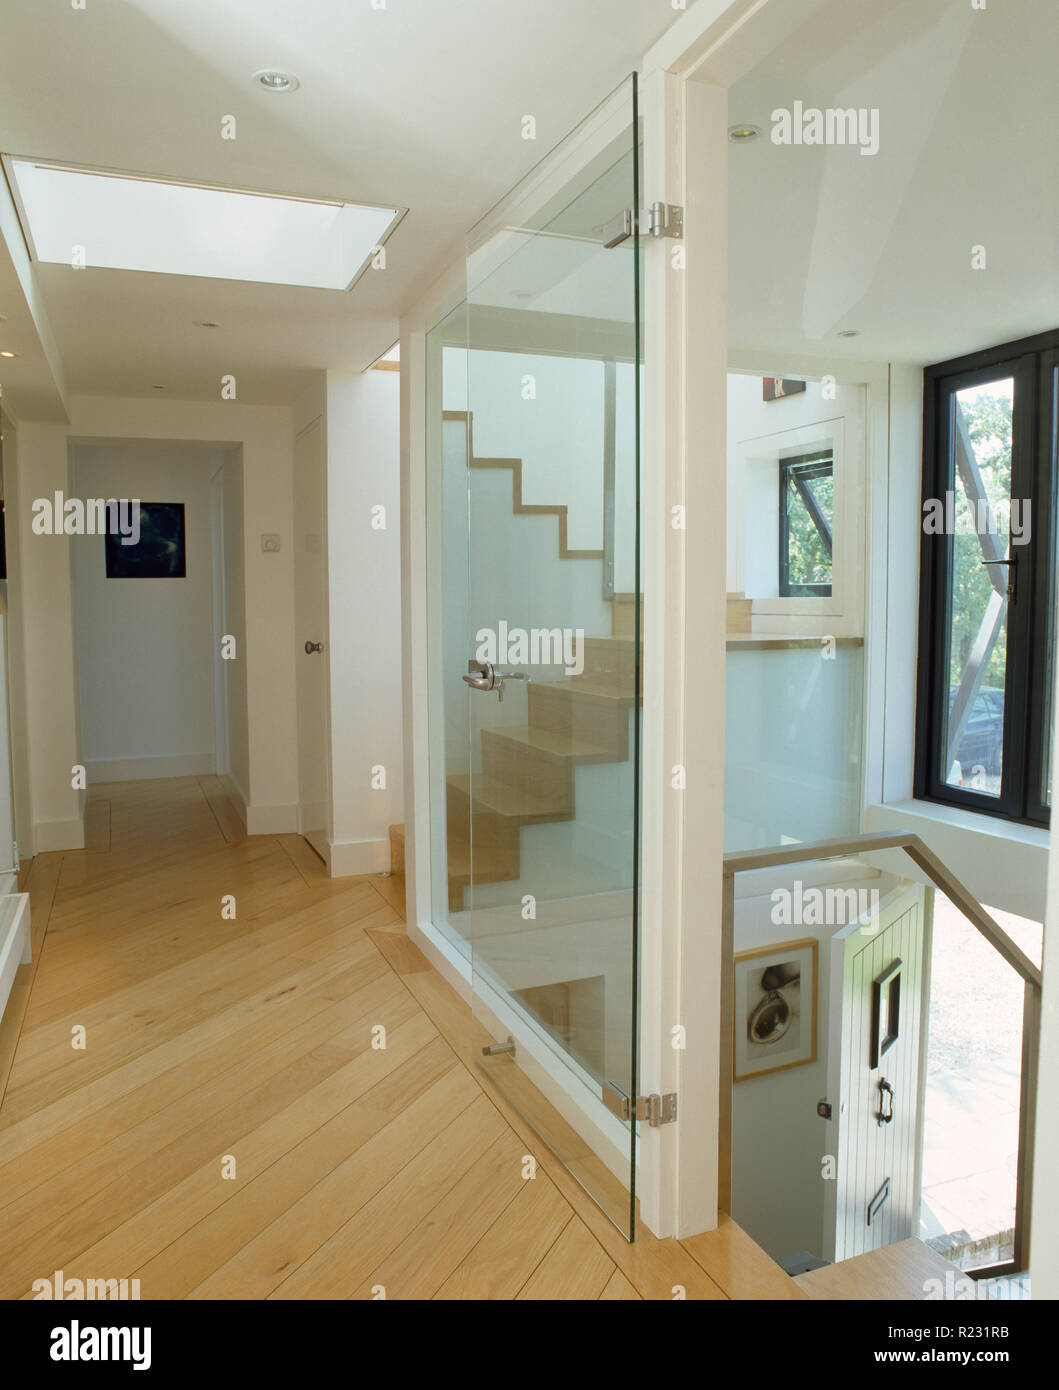 Modern landing with glass wall and wooden flooring - Stock Image